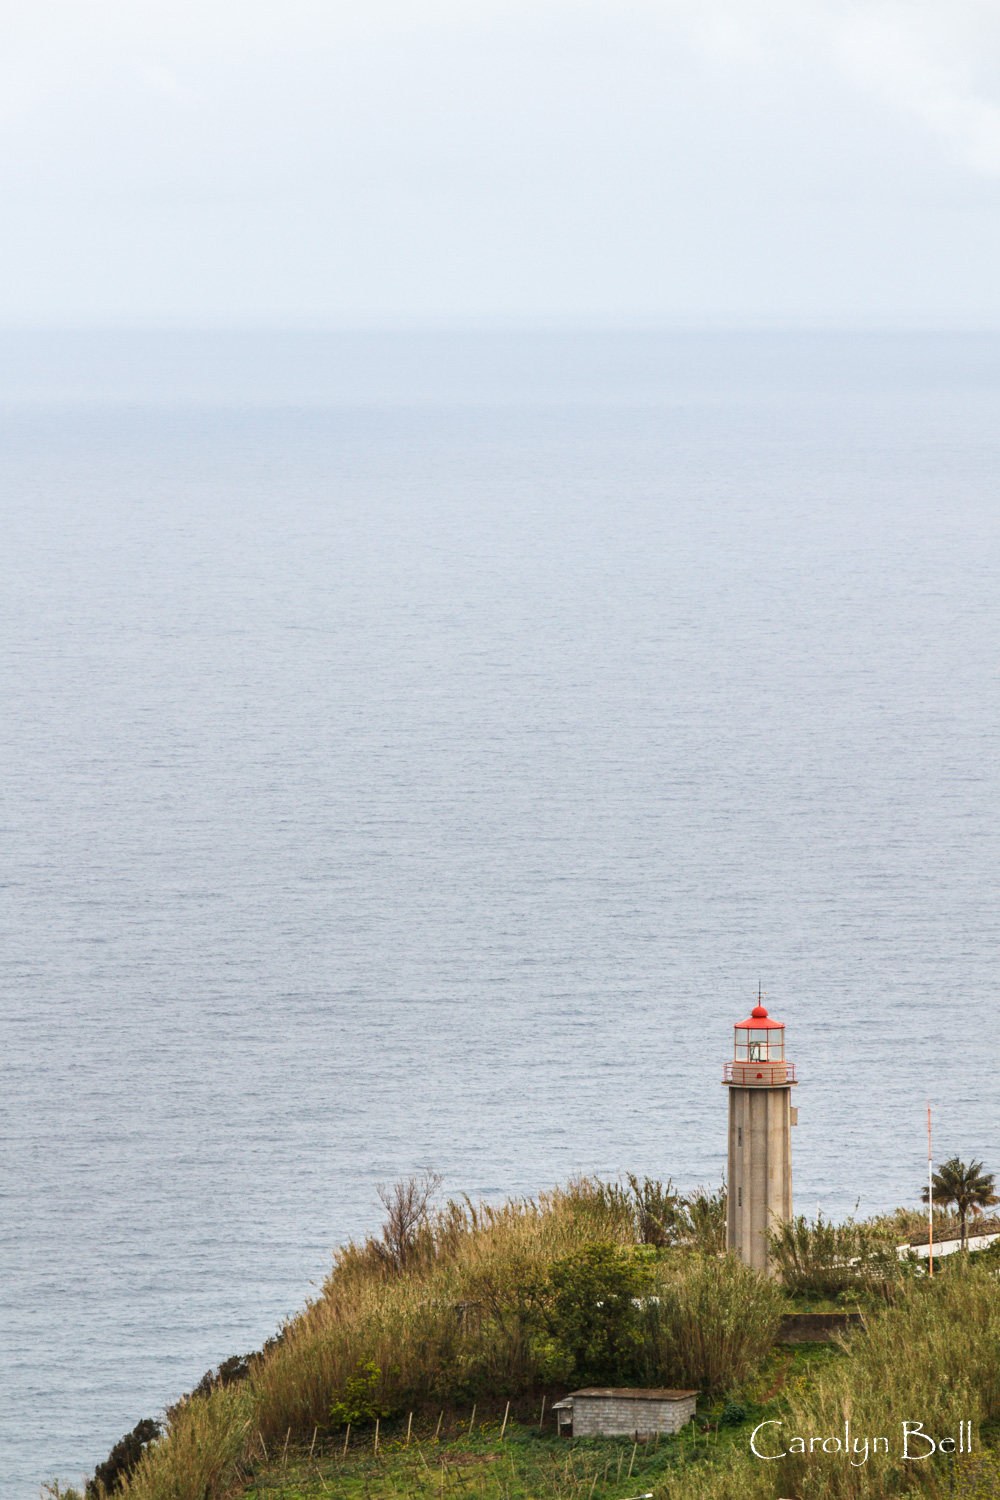 The lighthouse at Ponta de Sao Jorge